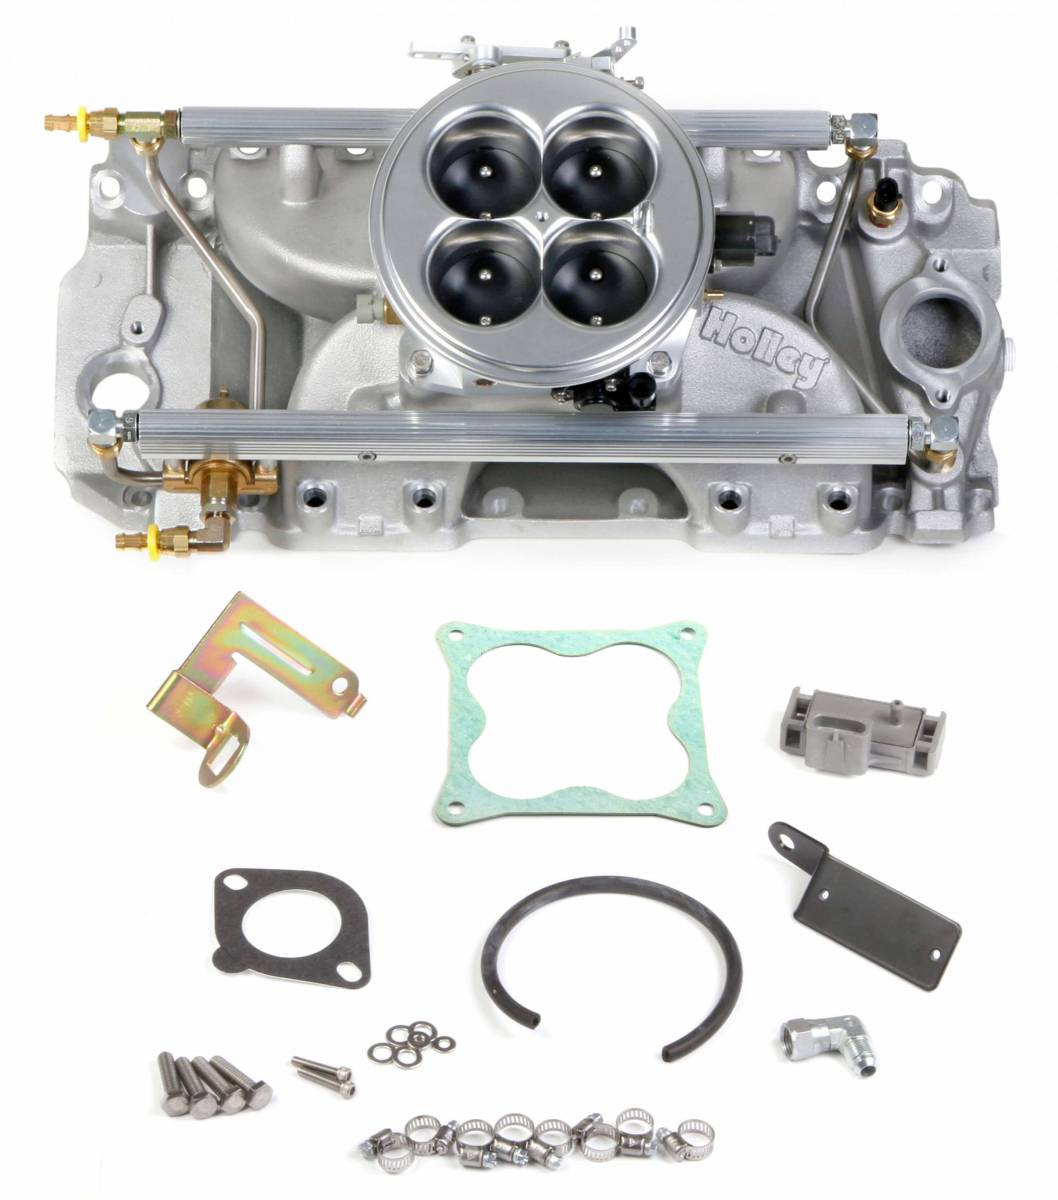 Holley - Holley Multi-Port Power Pack for Chevy Big Block Standard Deck, Rectangular Port Heads 2000CFM - Image 1